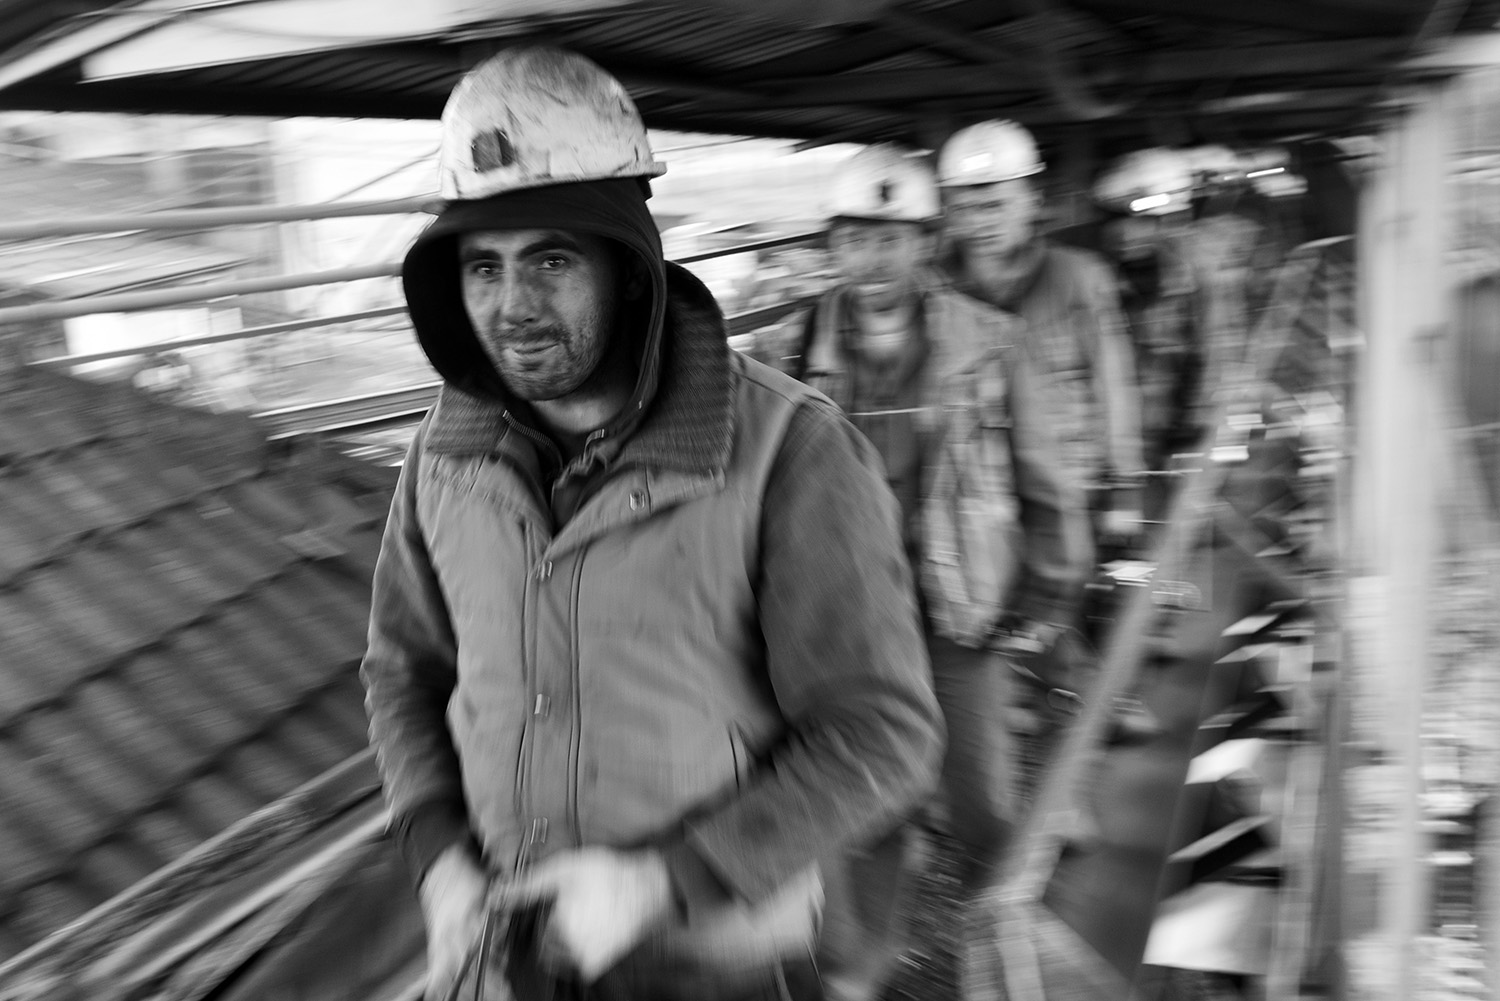 Coal miners on the conveyor belt comes out of pit which transports the coal to the surface.